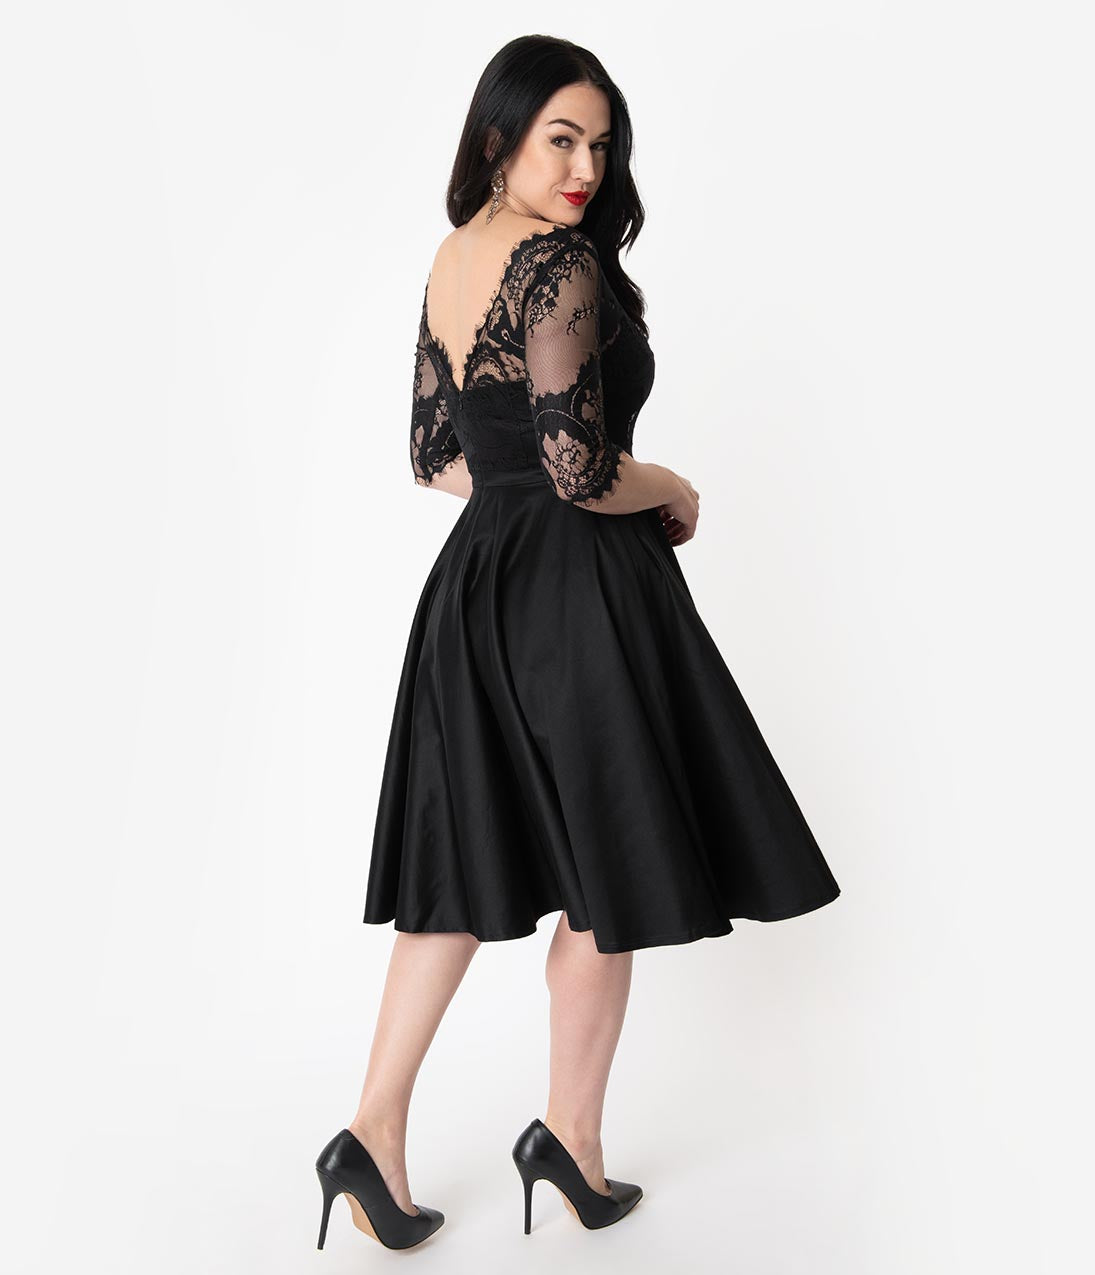 f1942aacb3e2 Cocktail Dresses - Vintage & Retro Party & Holiday Dresses – Unique ...